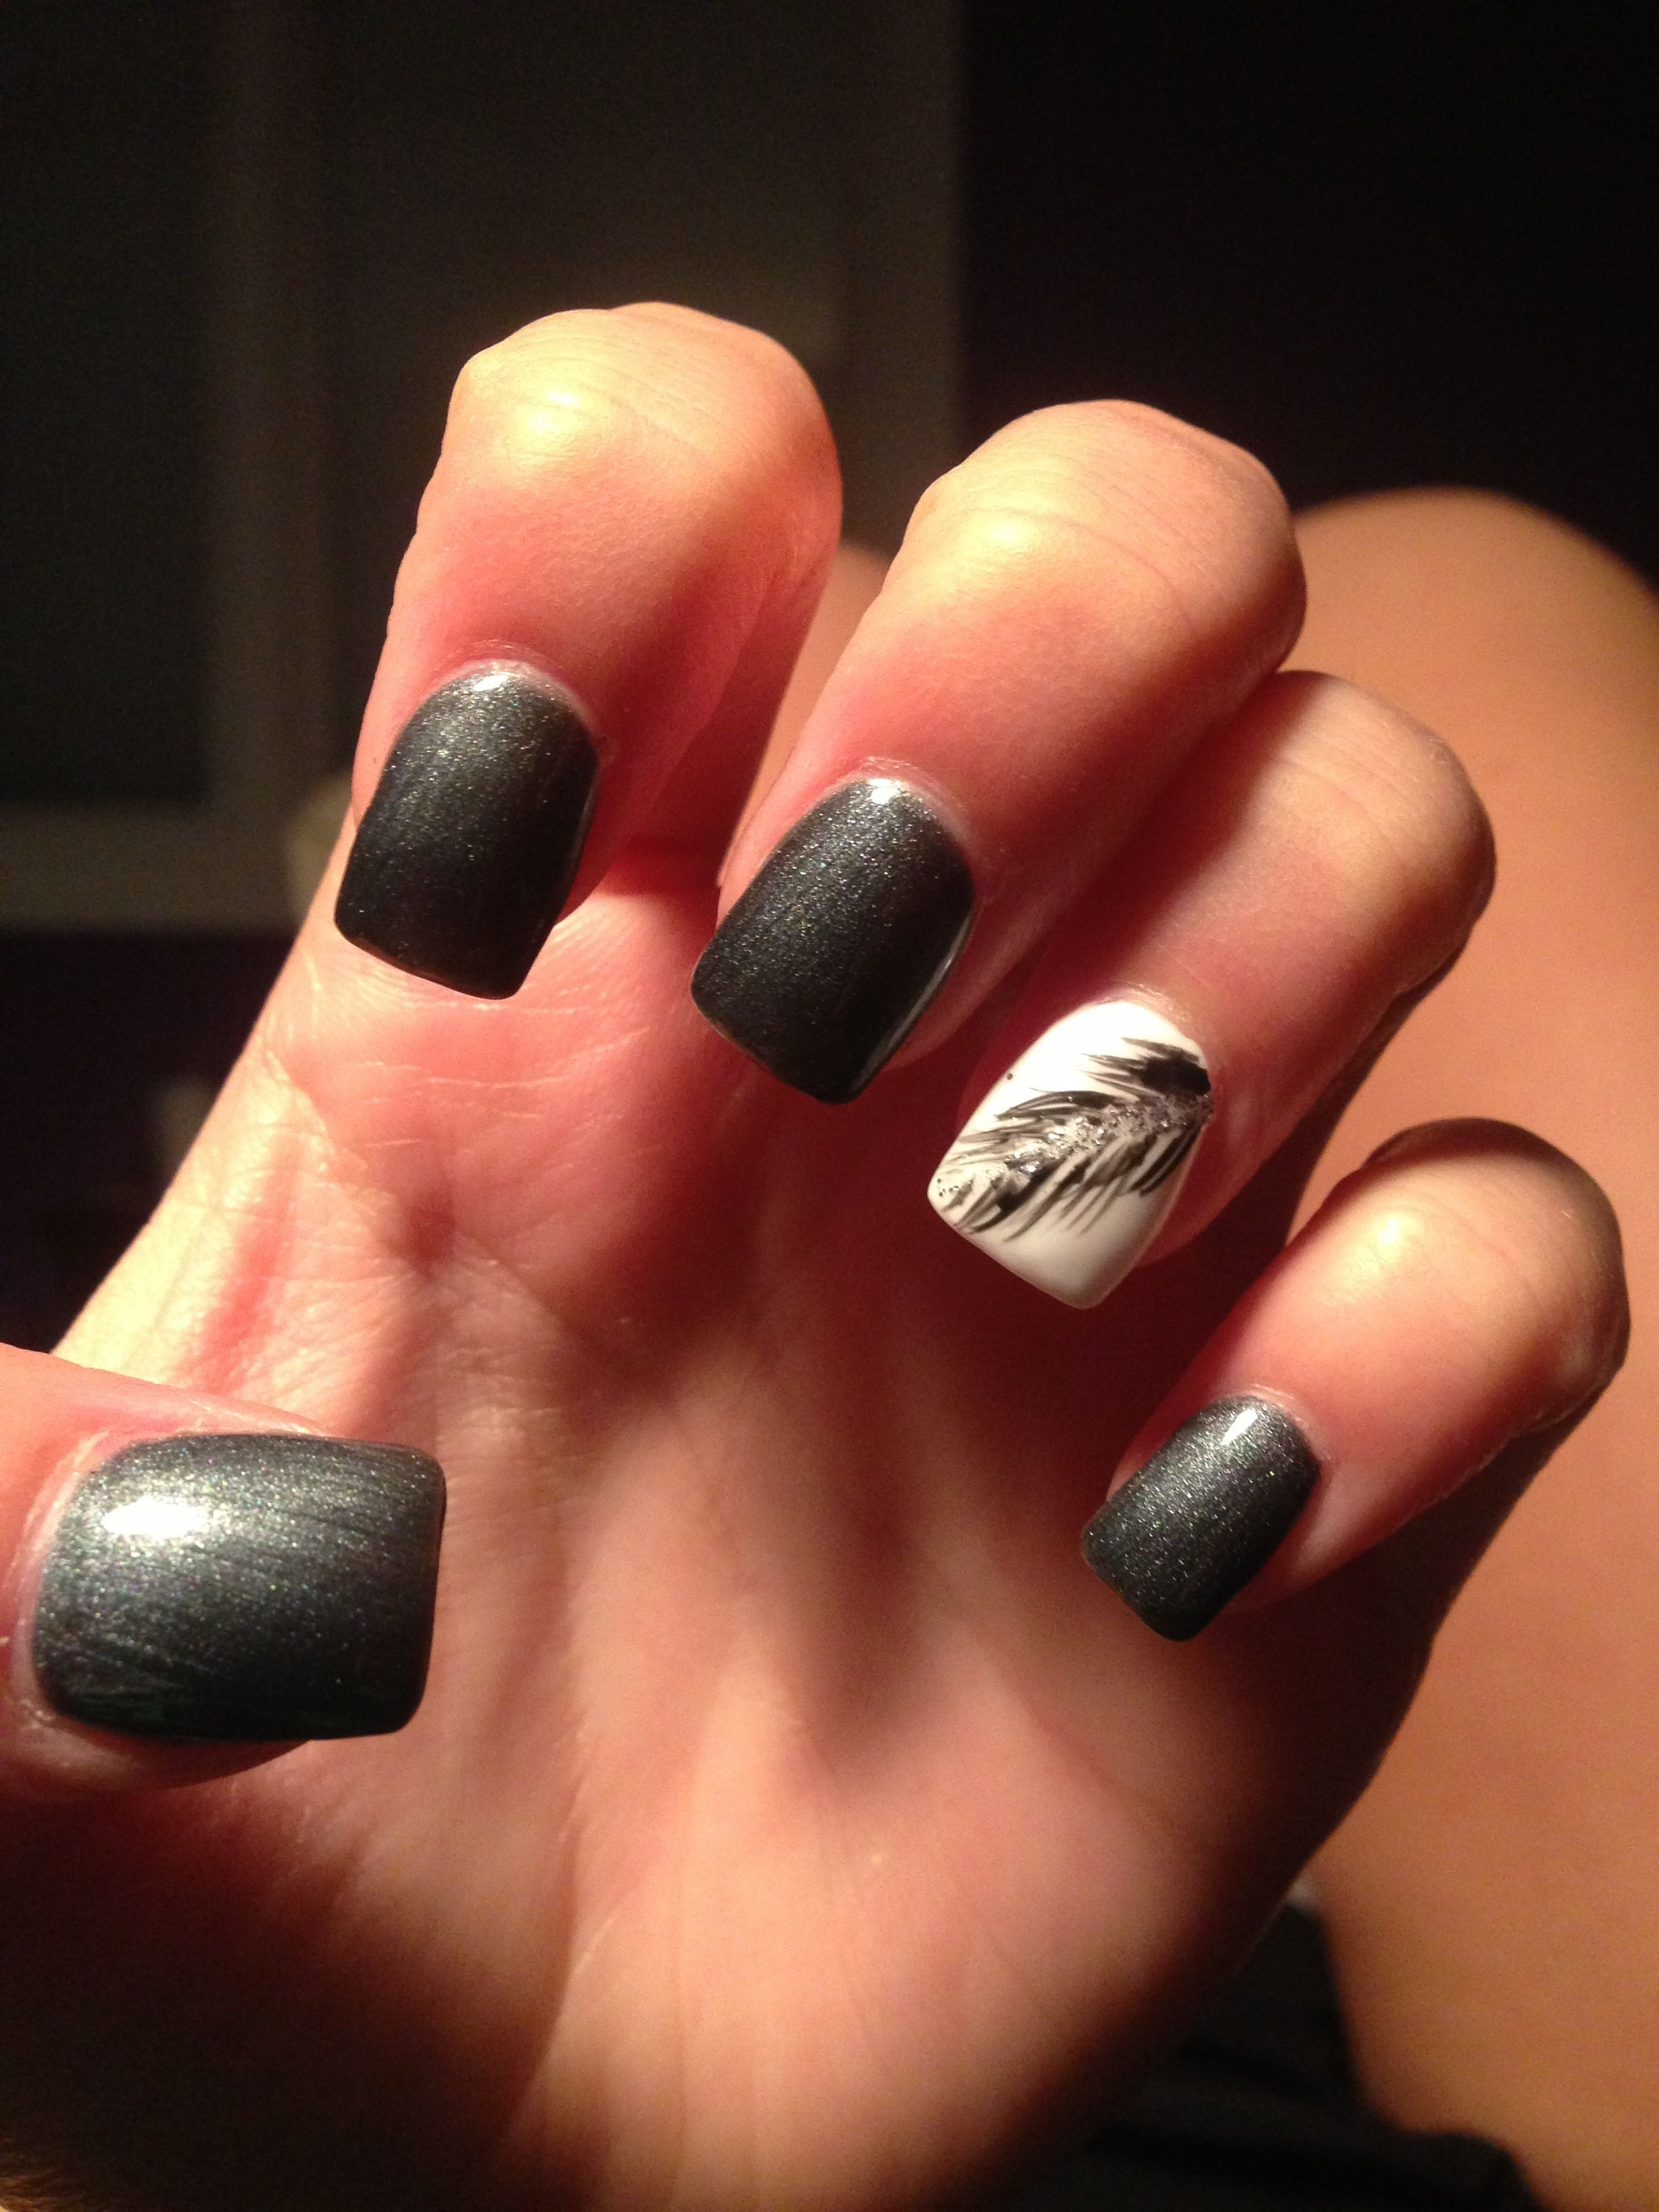 Feather nail design | nails | Pinterest | Feather nail designs ...